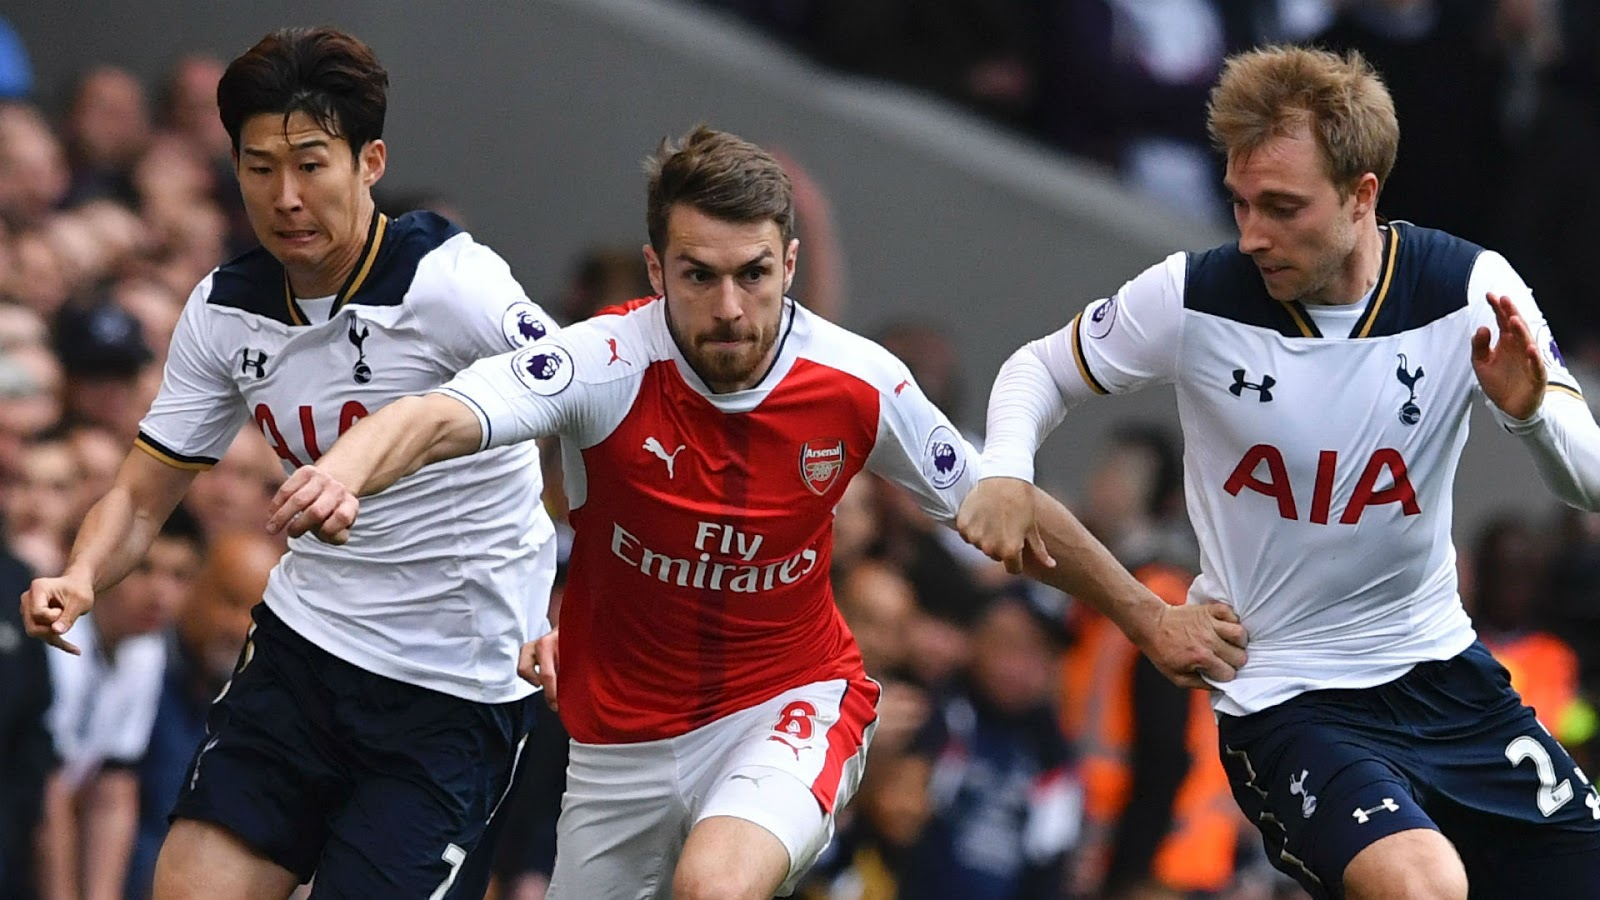 Arsenal vs Tottenham EN VIVO por la Premier League